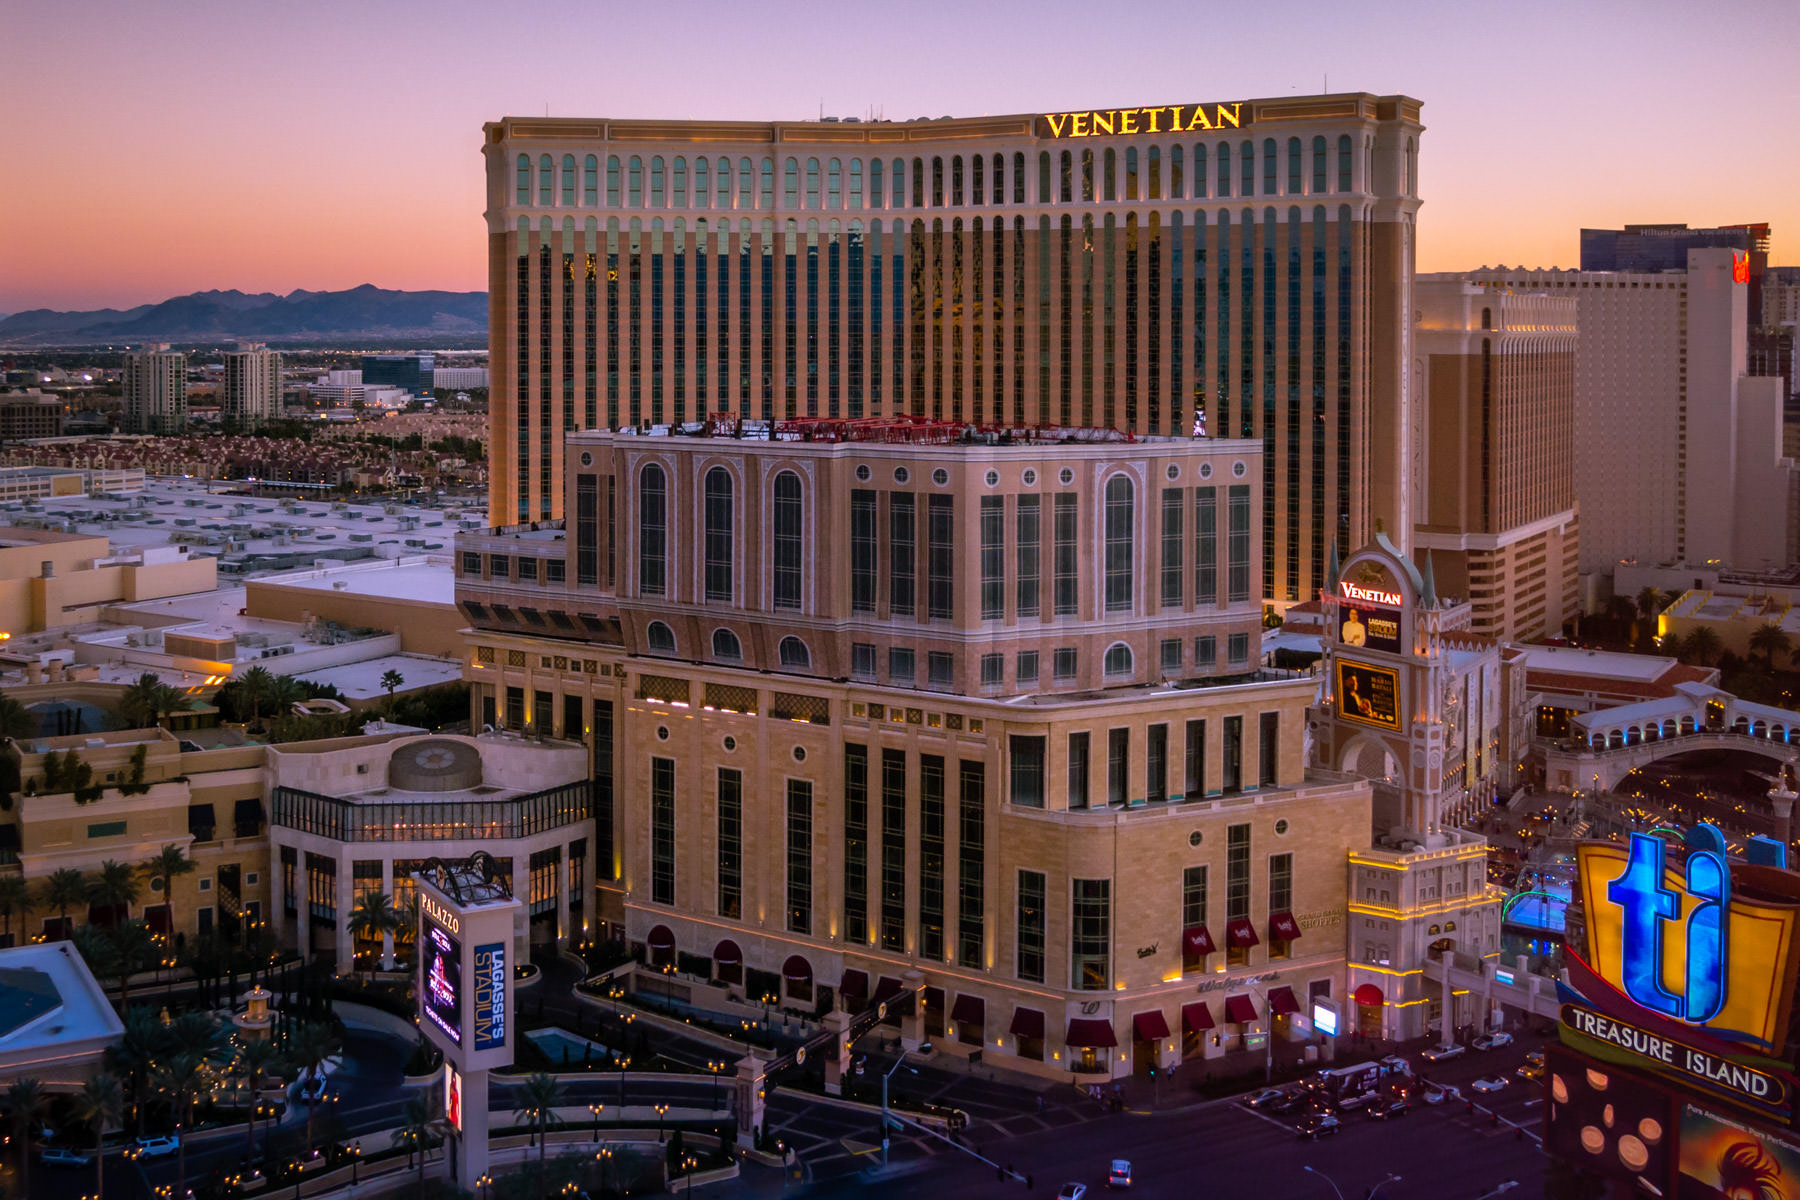 The sun sets on the Venetian Hotel & Casino and the Las Vegas Valley.